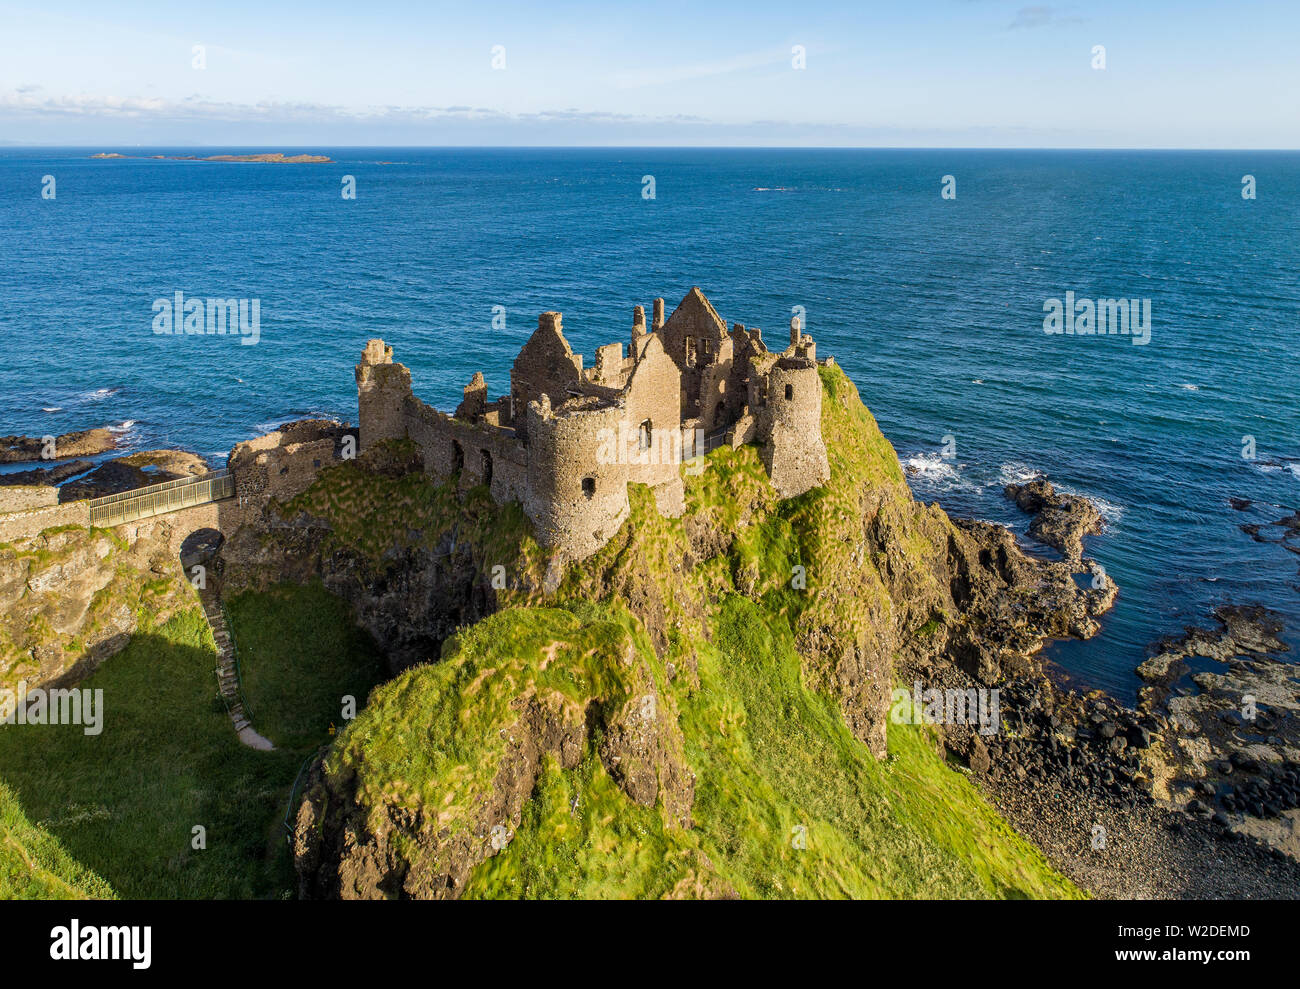 Ruins of medieval Dunluce Castle on a steep cliff. Northern coast of County Antrim, Northern Ireland, UK. Aerial view in sunrise light - Stock Image